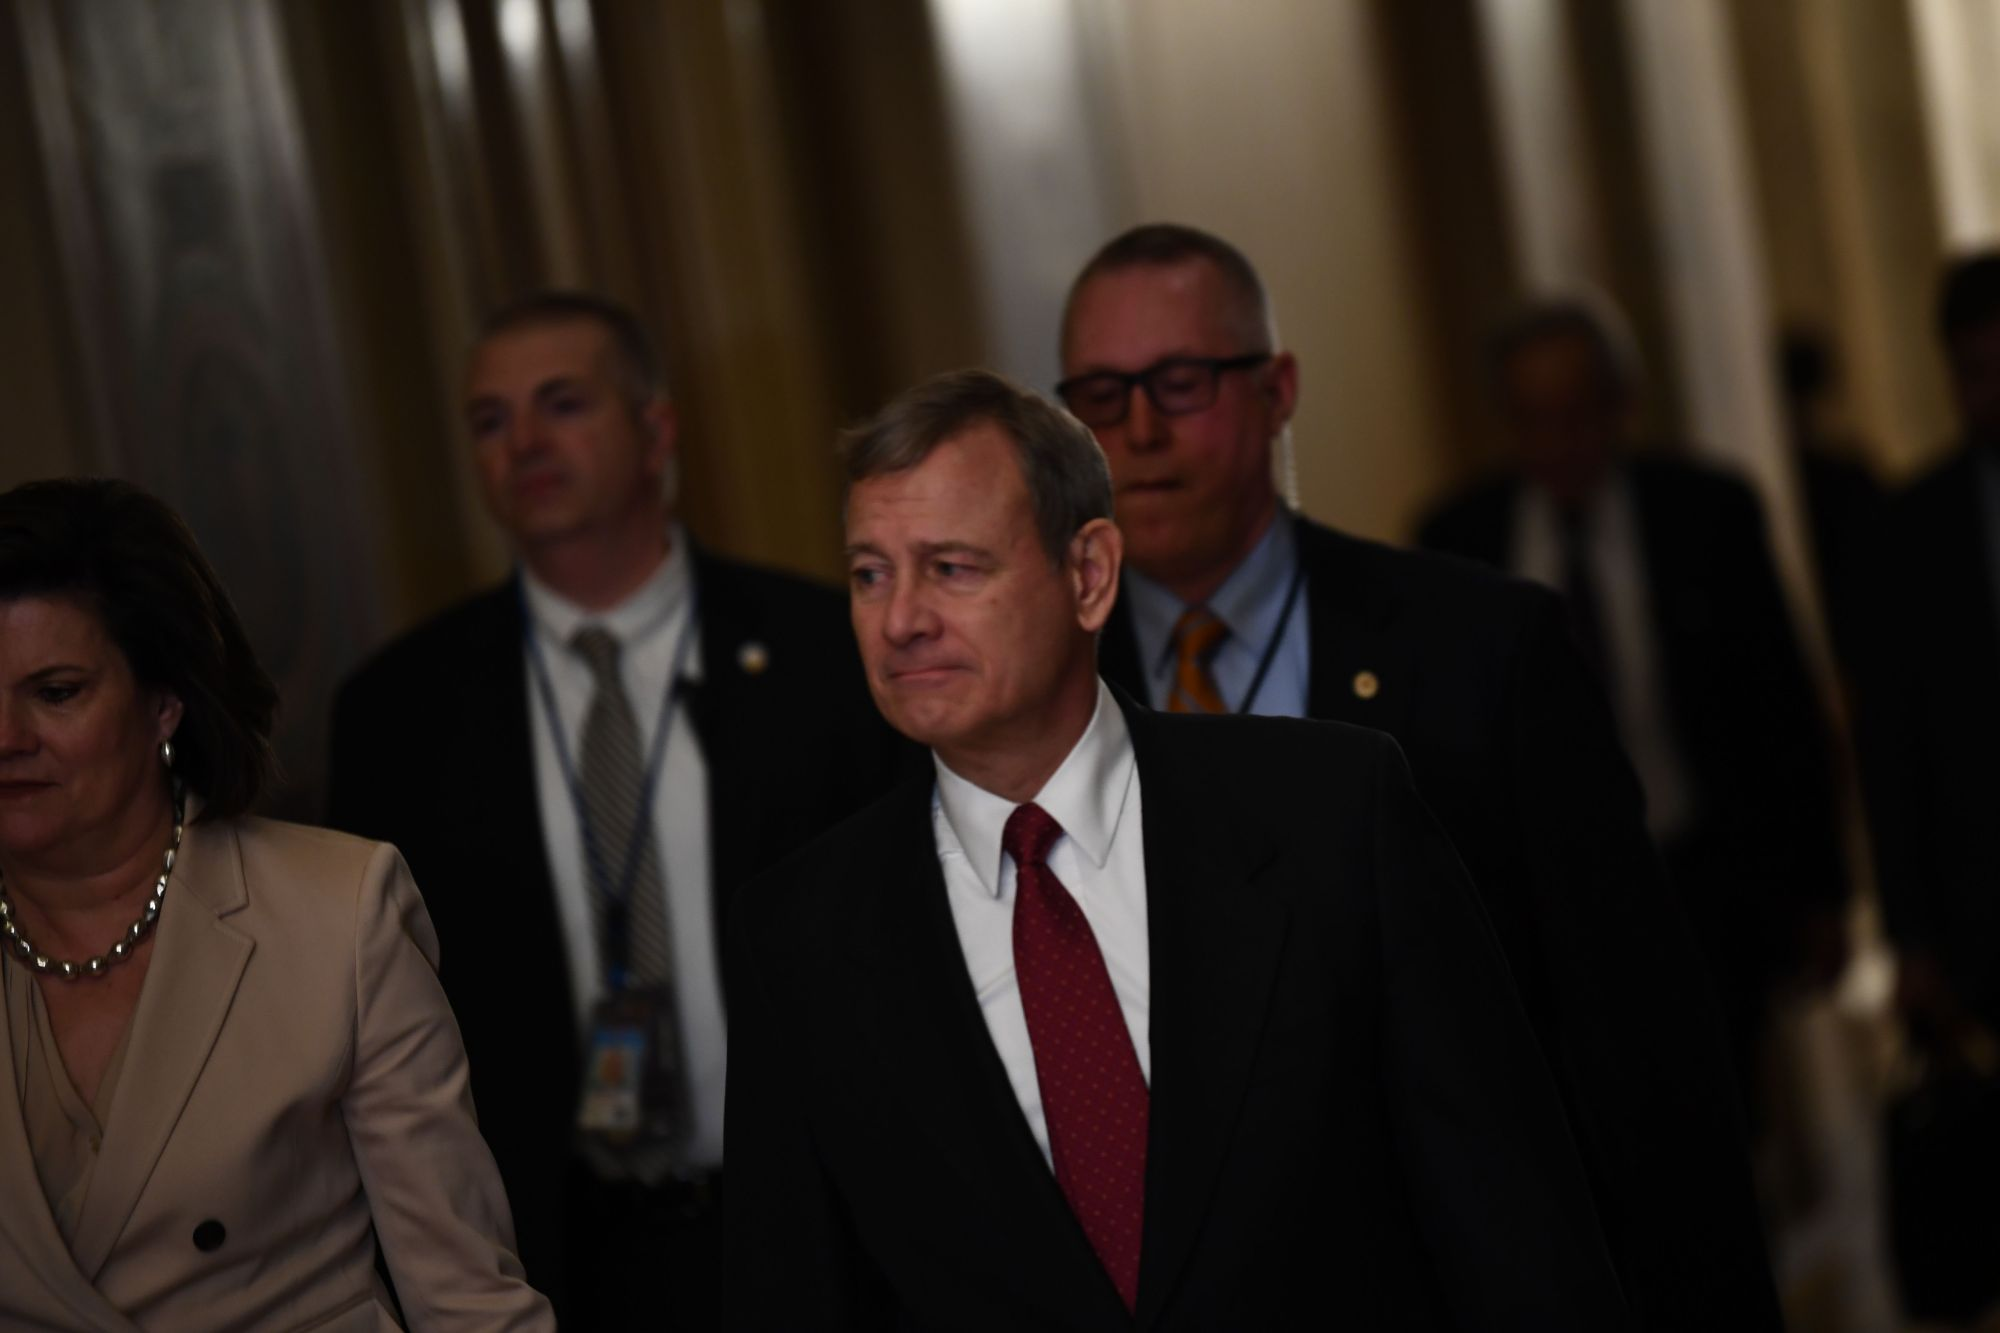 U.S. Supreme Court Chief Justice John Roberts arrives during the impeachment trial of U.S. President Donald Trump on Capitol Hill Wednesday in Washington. | AFP-JIJI